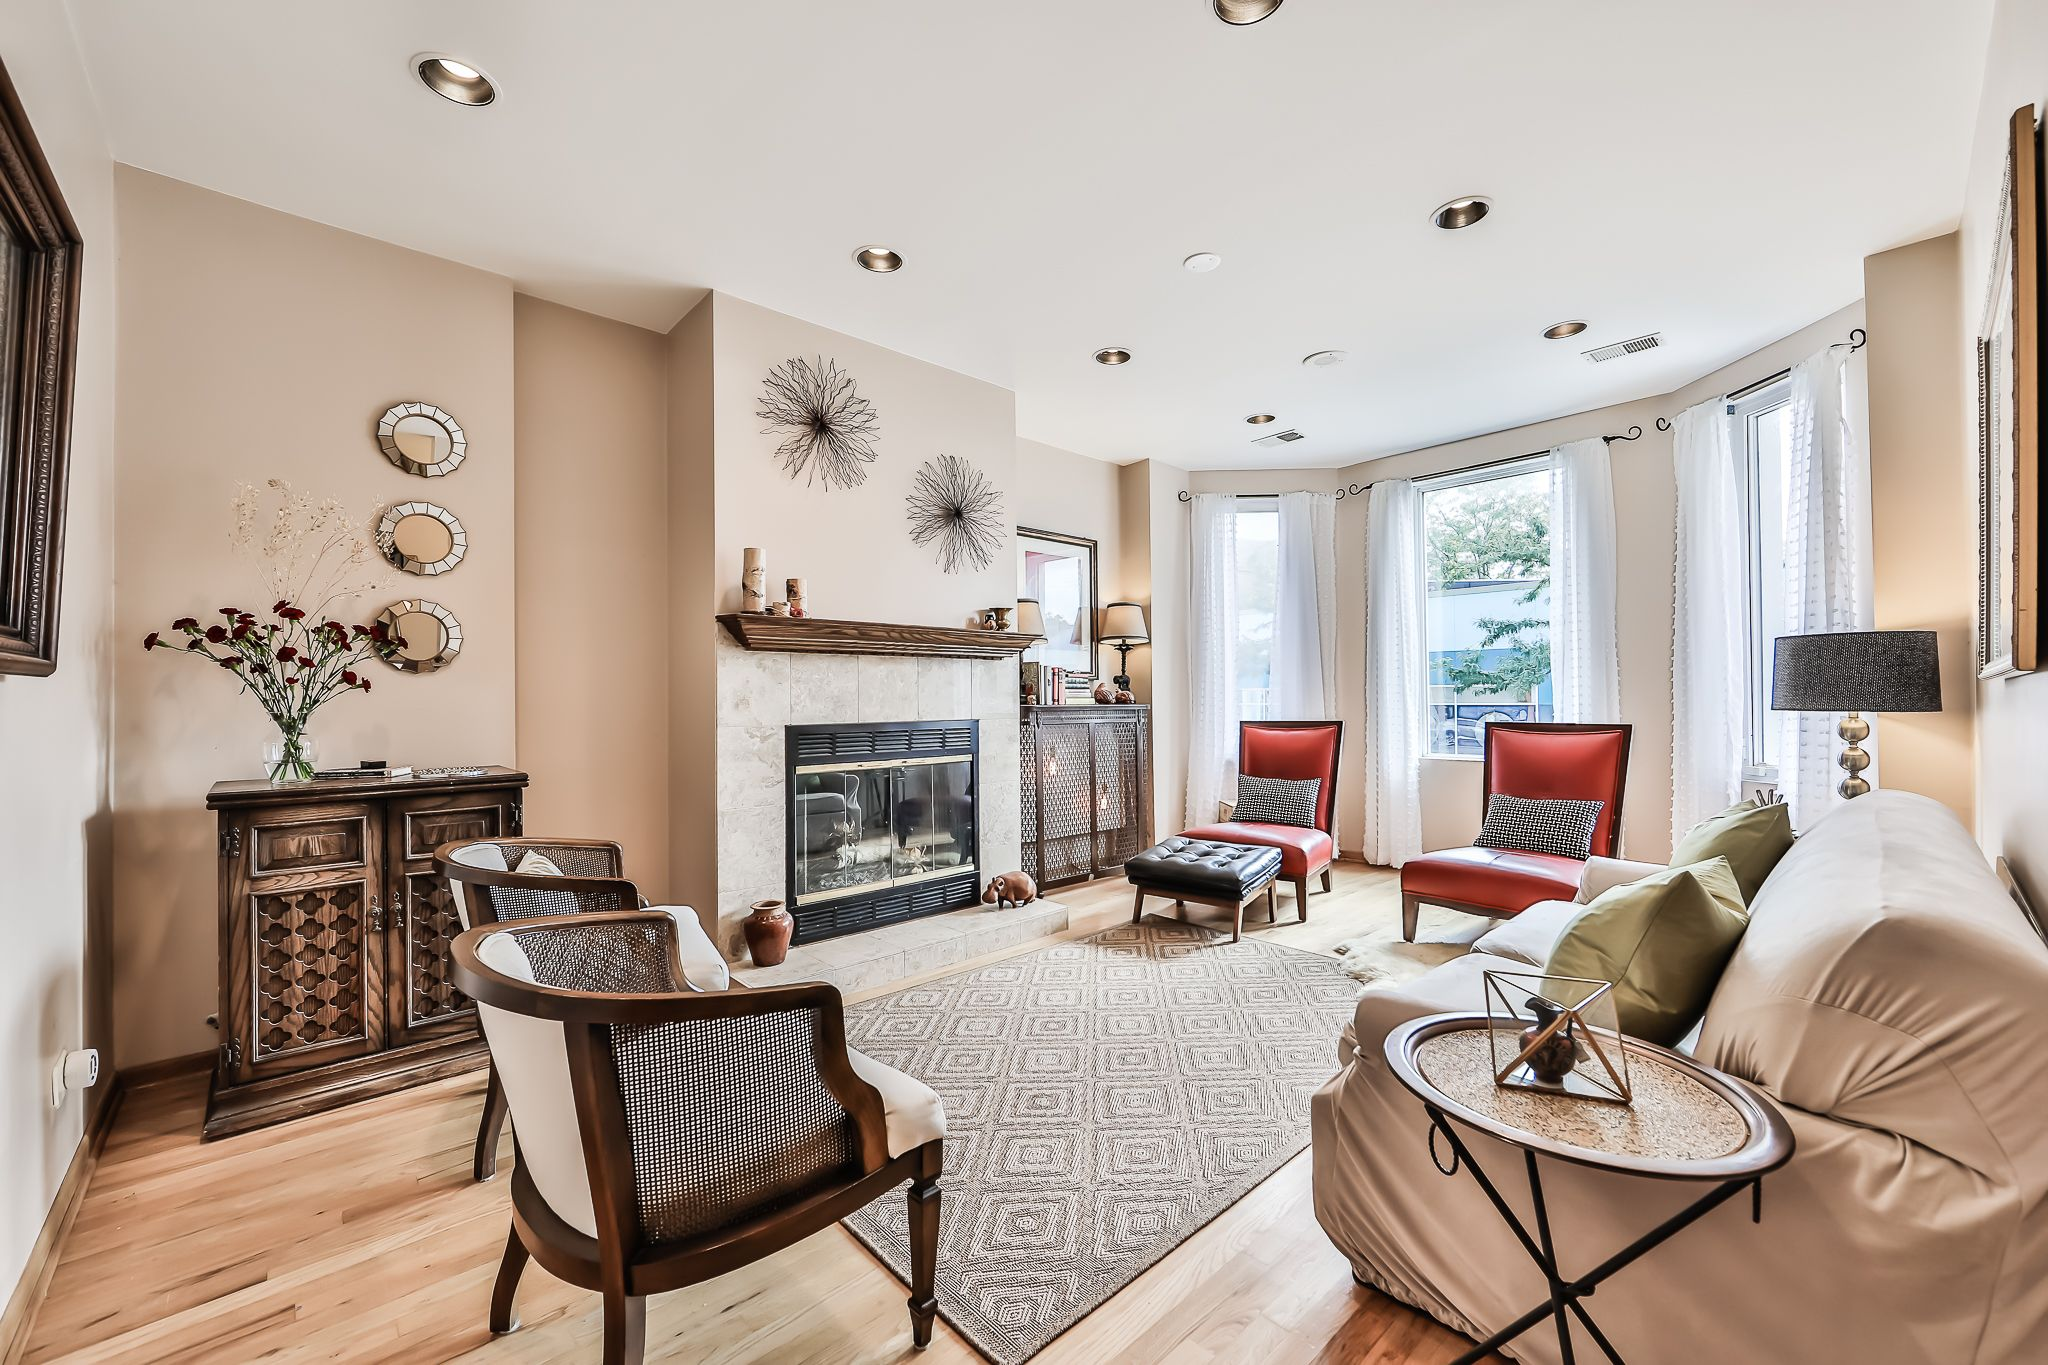 This 2 bedroom + den in Lincoln Park has a wood burning